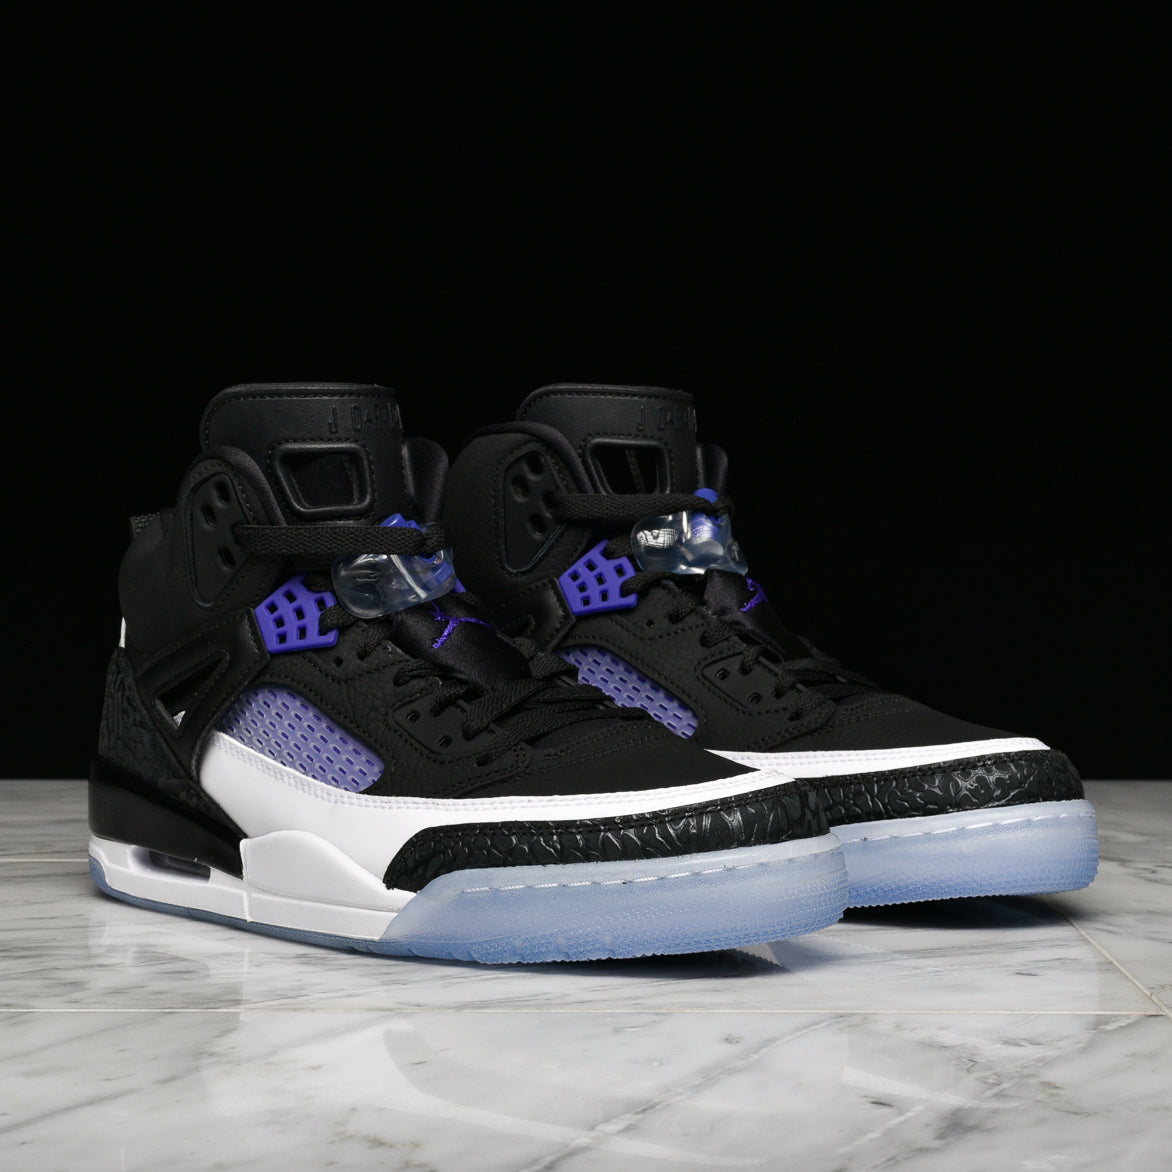 JORDAN SPIZIKE - BLACK / DARK PURPLE / WHITE